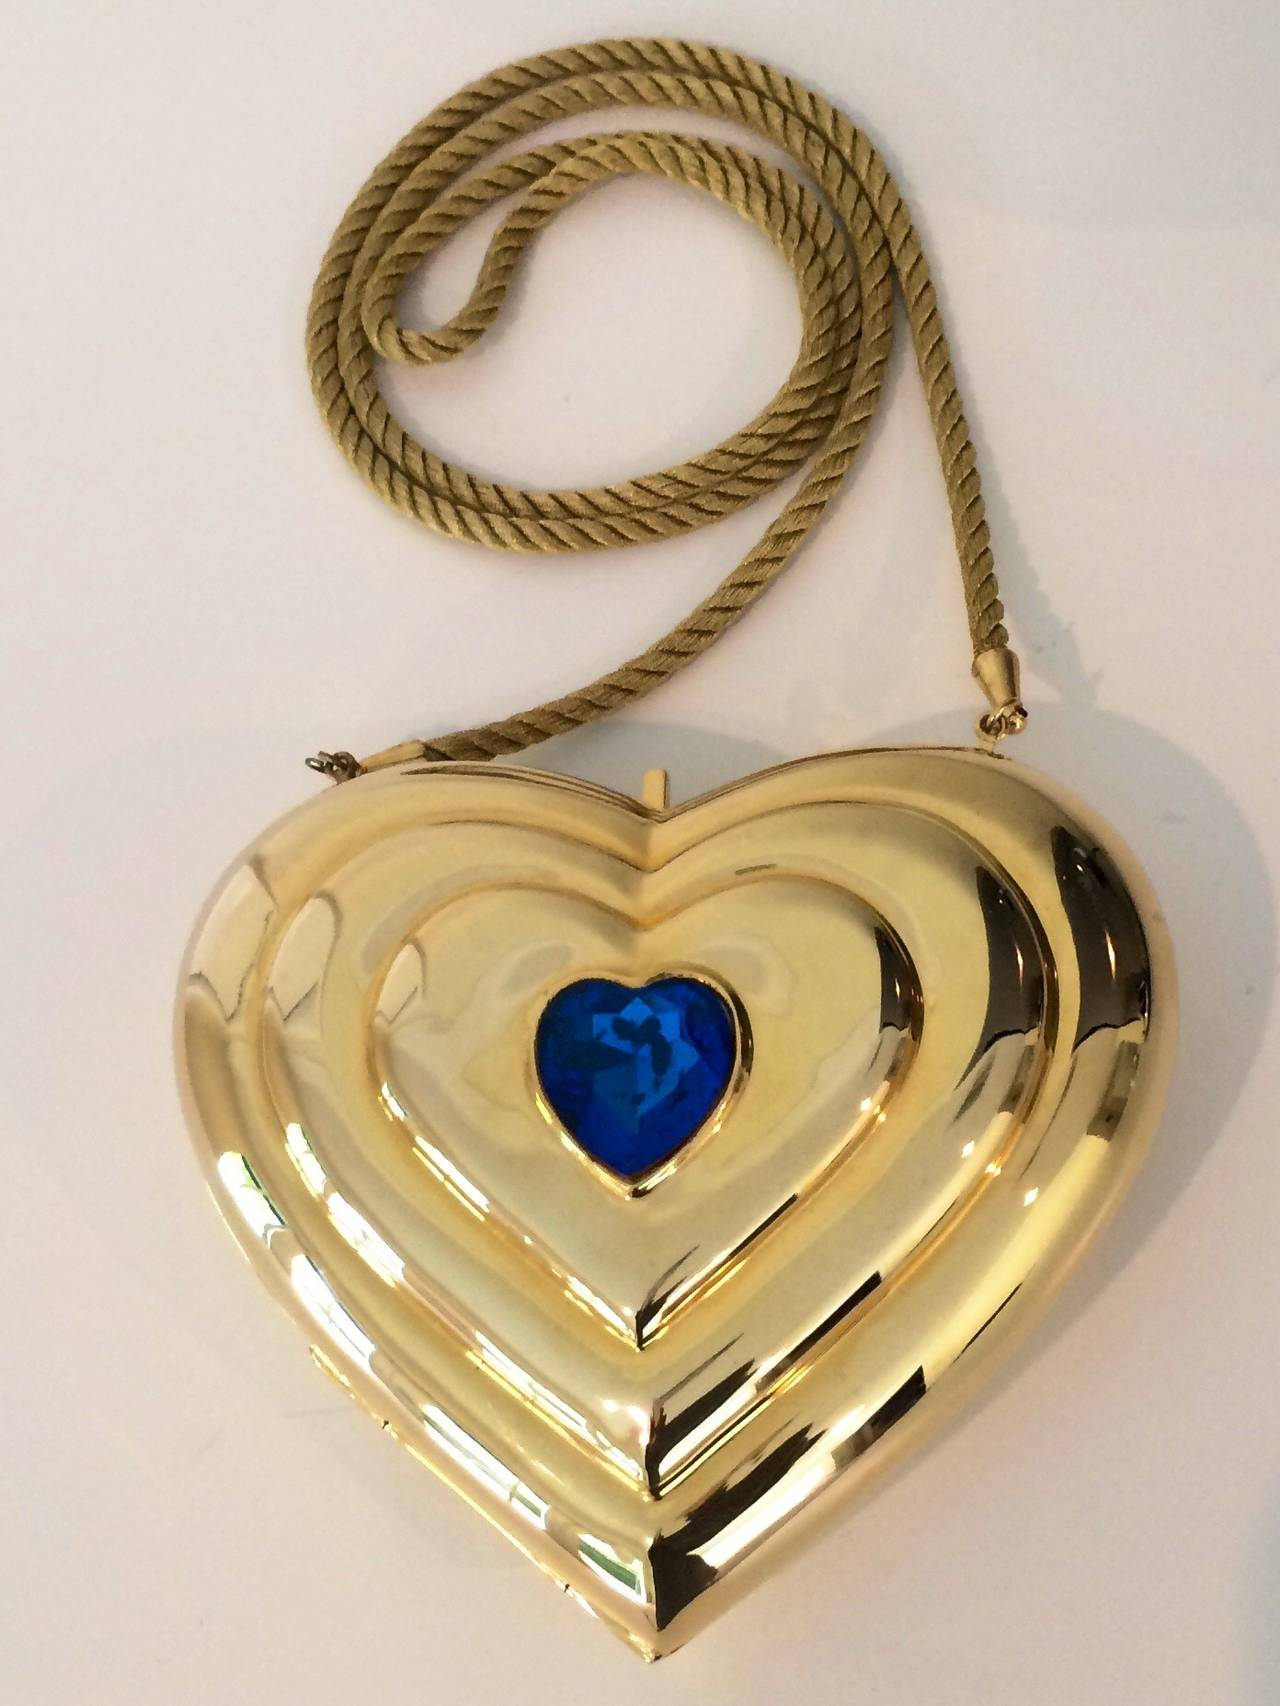 YSL / Yves Saint Laurent Heart Shaped Gold & Sapphire Crystal Minaudiere Bag 2